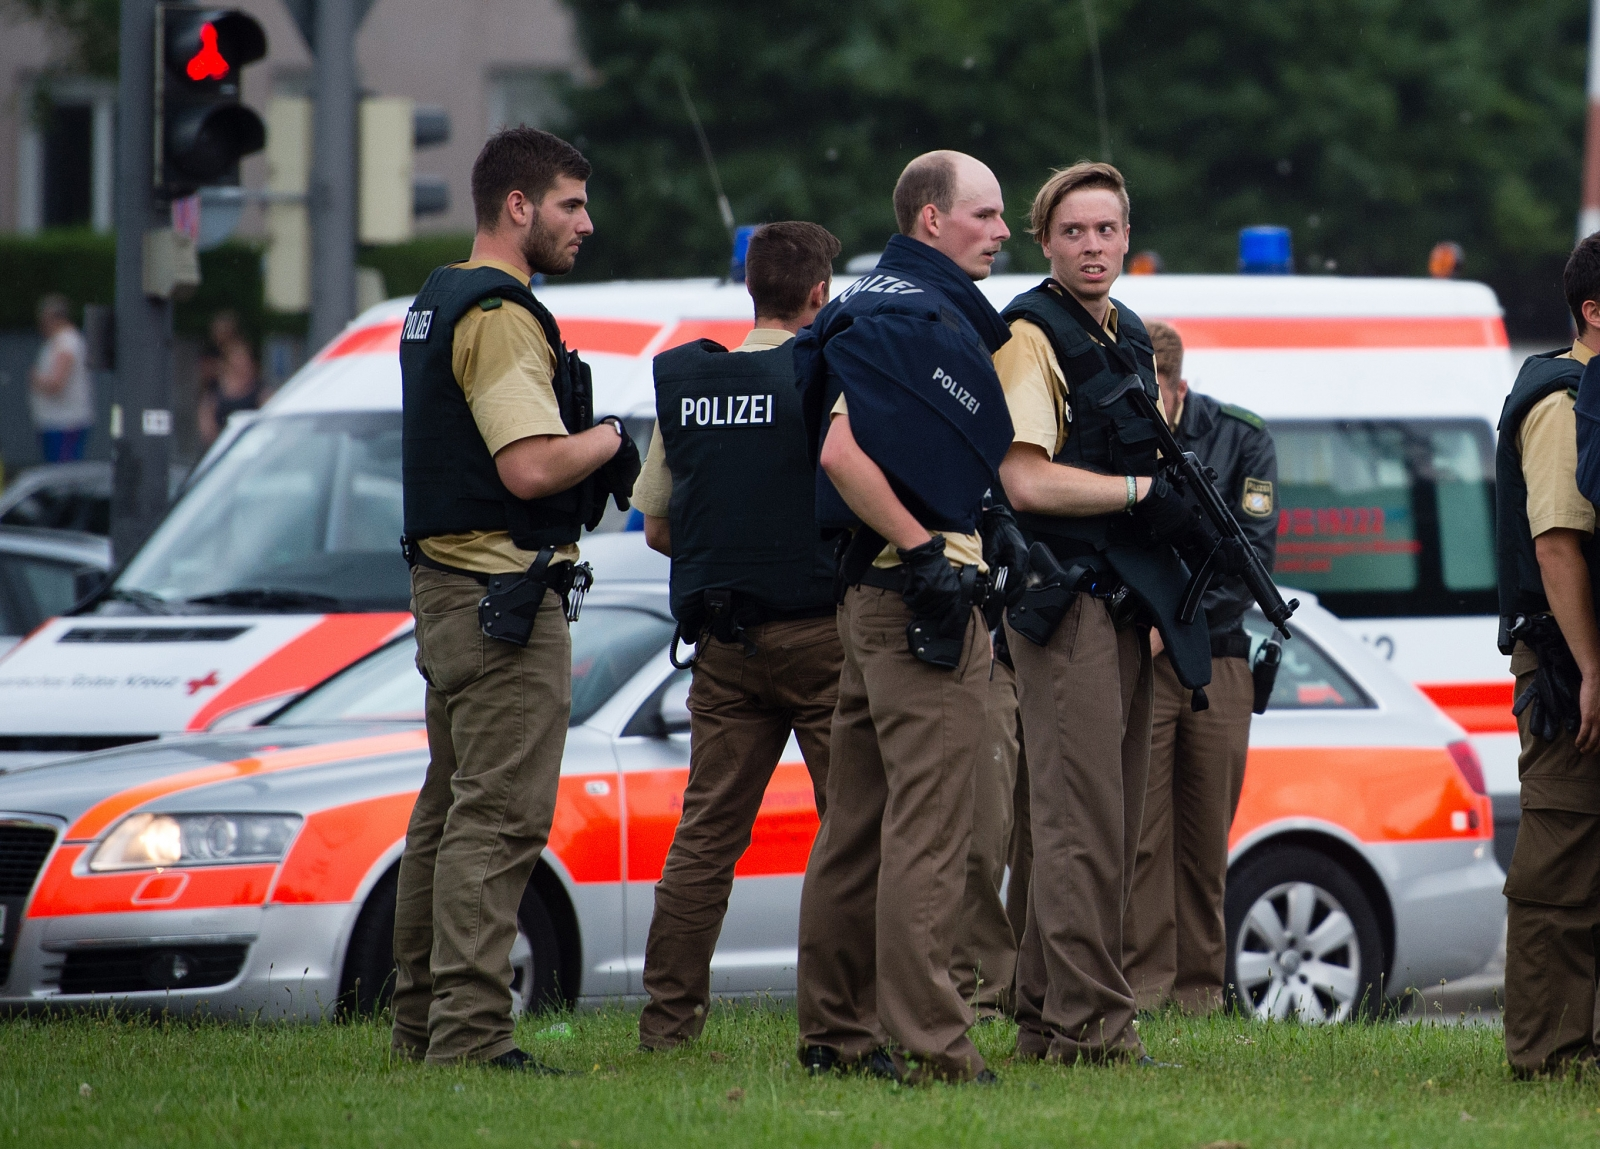 Munich mall shooting police response